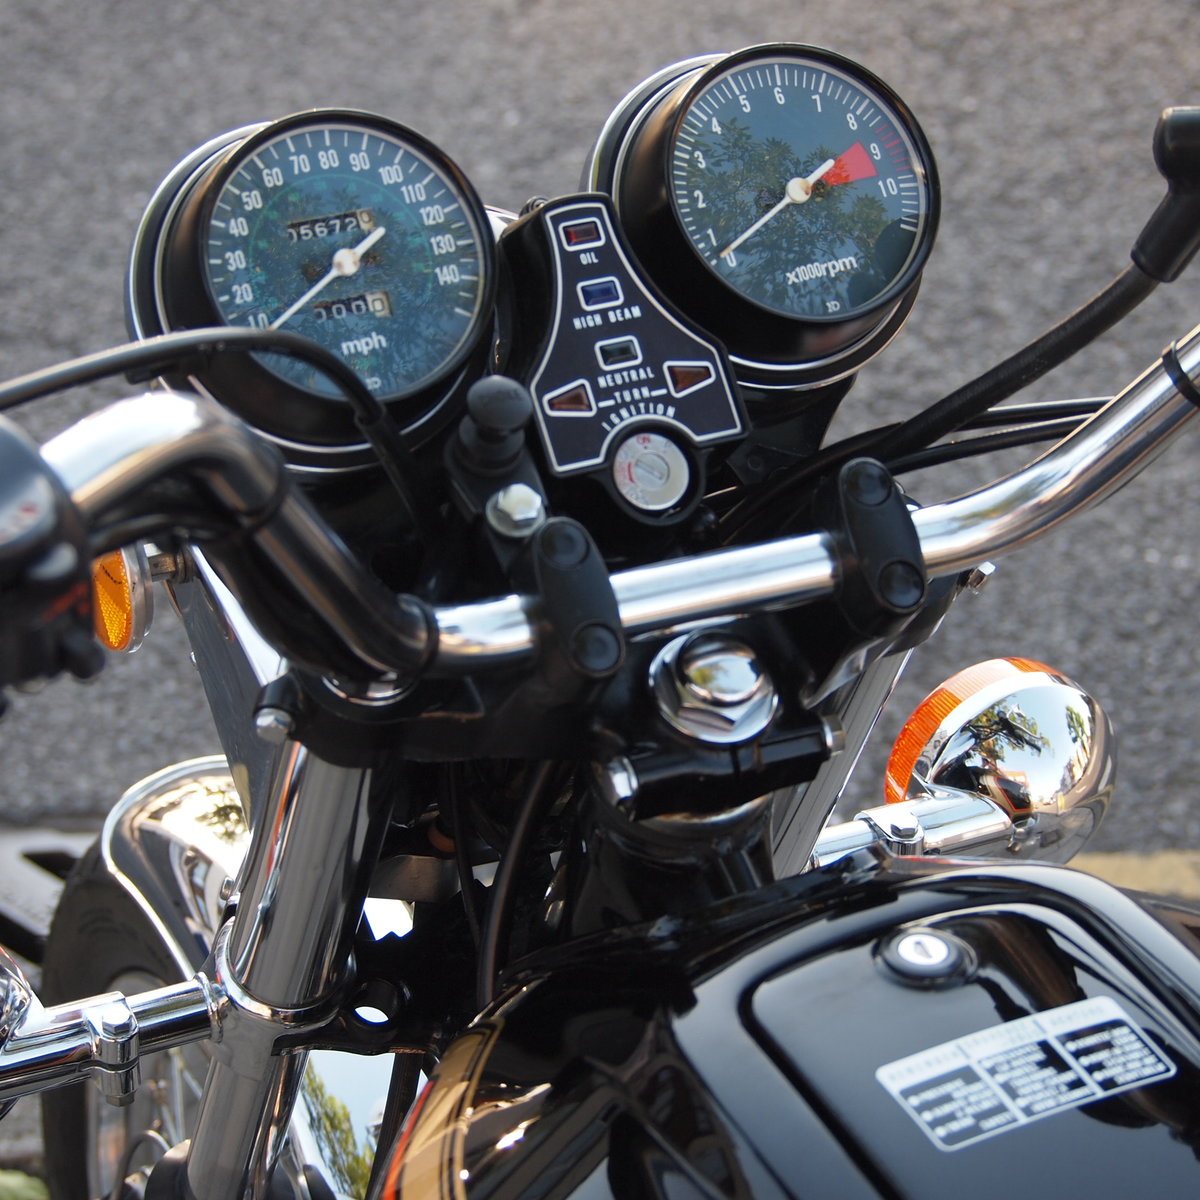 1978 Honda CB750 K8 5703 Miles, RESERVED FOR LOUIS & ANTOINETTE. SOLD (picture 6 of 6)